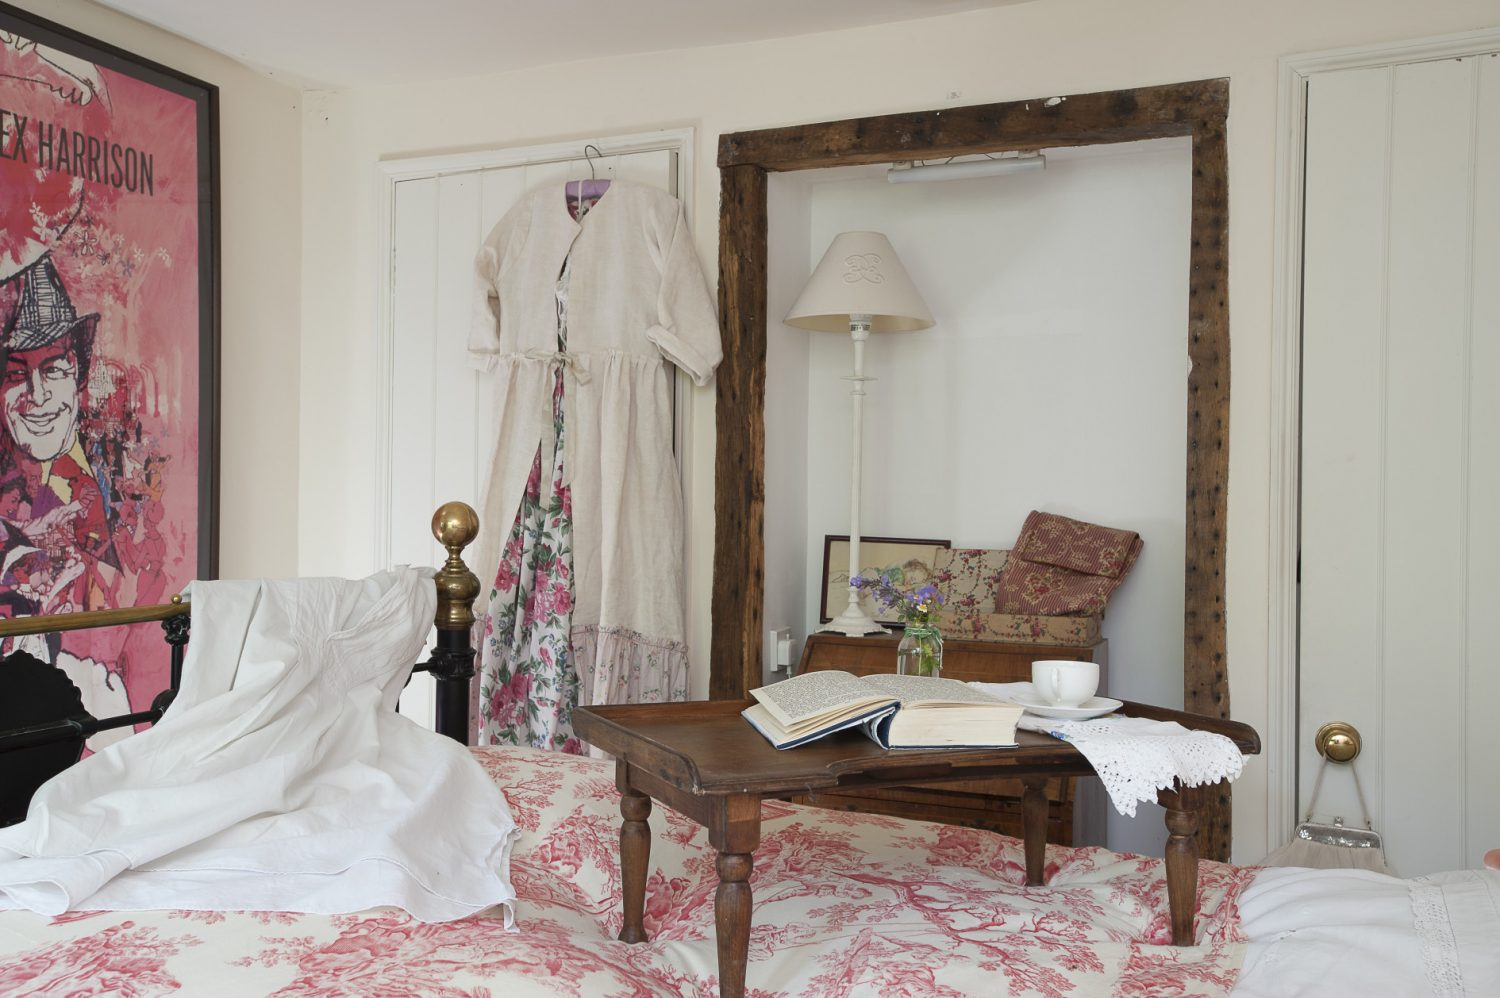 A door from the sitting room leads into the master bedroom. The couple have plans to extend the cottage outwards and upwards, adding on more living space and a further bedroom upstairs